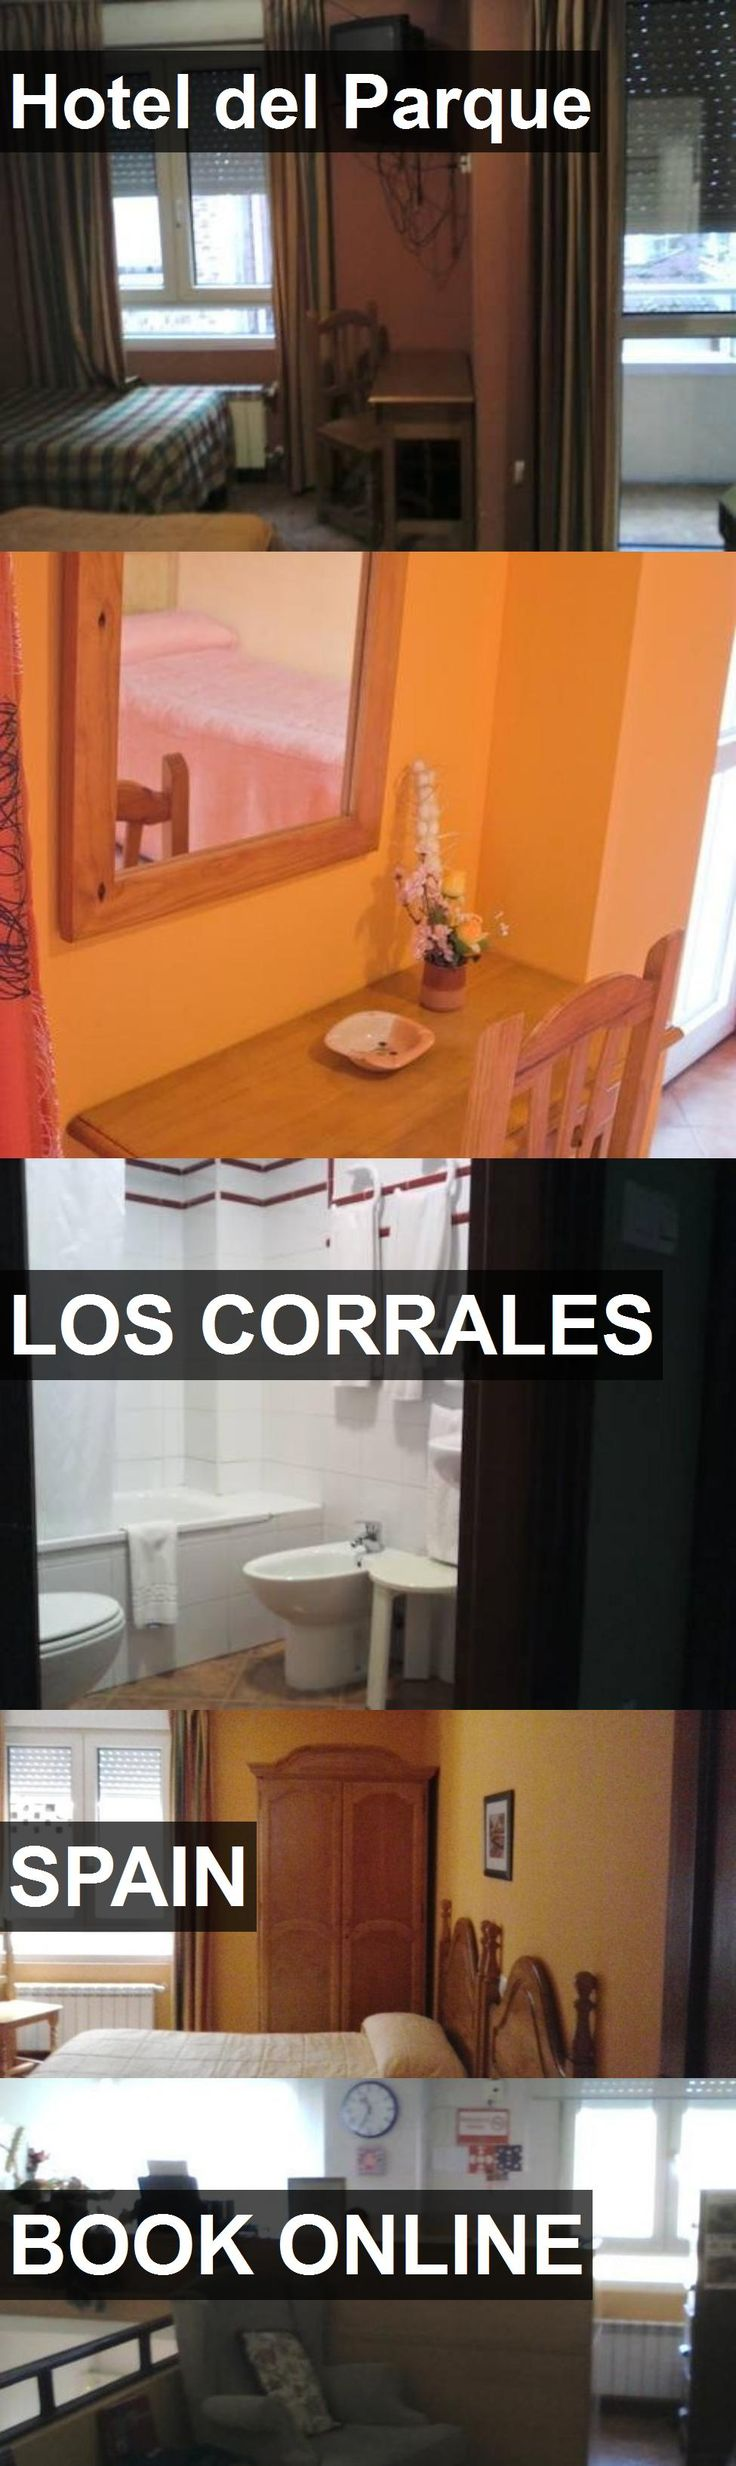 Hotel Hotel del Parque in Los Corrales, Spain. For more information, photos, reviews and best prices please follow the link. #Spain #LosCorrales #HoteldelParque #hotel #travel #vacation